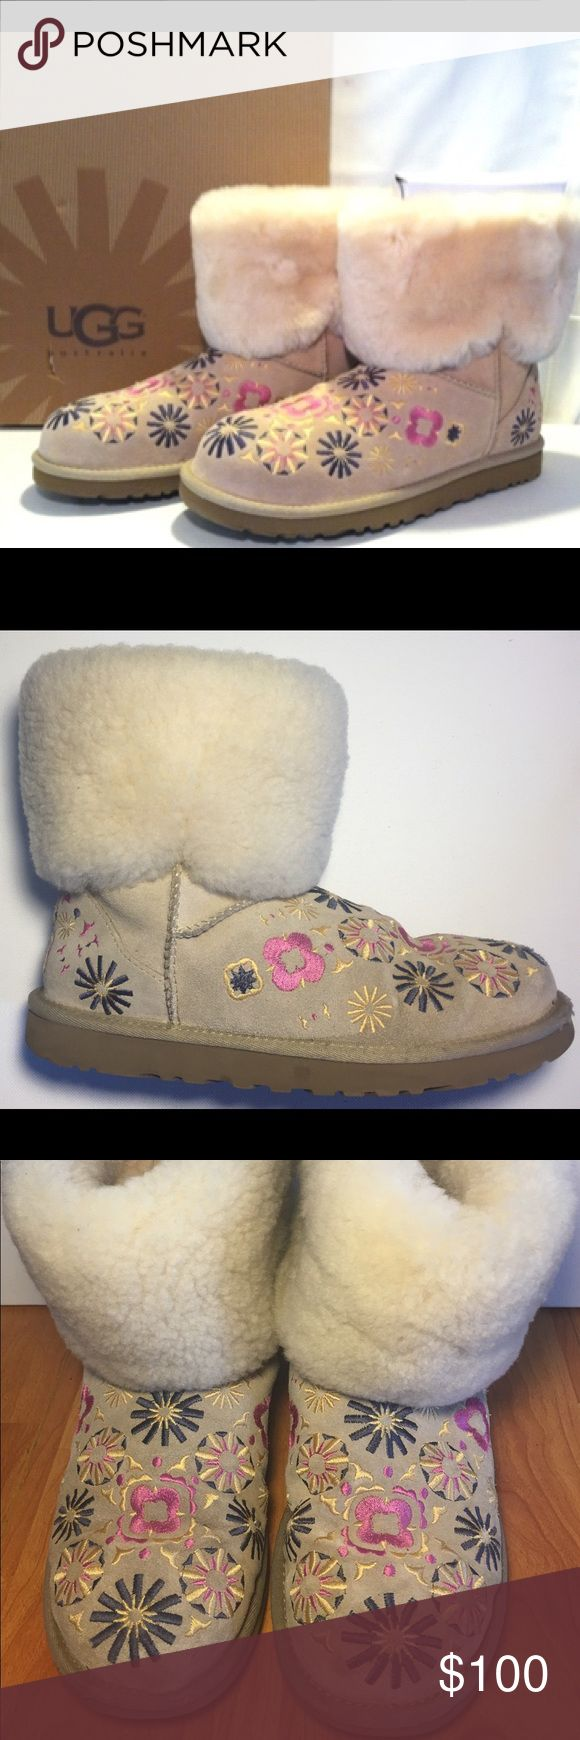 UGG Australia Marrakech Boots in EUC. UGG Australia Marrakech Boots in EUC. Add a little Marrakech influence to your ensemble with the Embroidery Mid boot from UGG Australia.  * Twin-faced sheepskin upper with a sheepskin-lined shaft for added warmth.  * Colorful embroidery detail adds fun to your look and tons of added appeal.  * Sheepskin-lined shaft and footbed helps wick away moisture for added breathability.  * Flexible molded EVA outsole gives a lightweight durability…